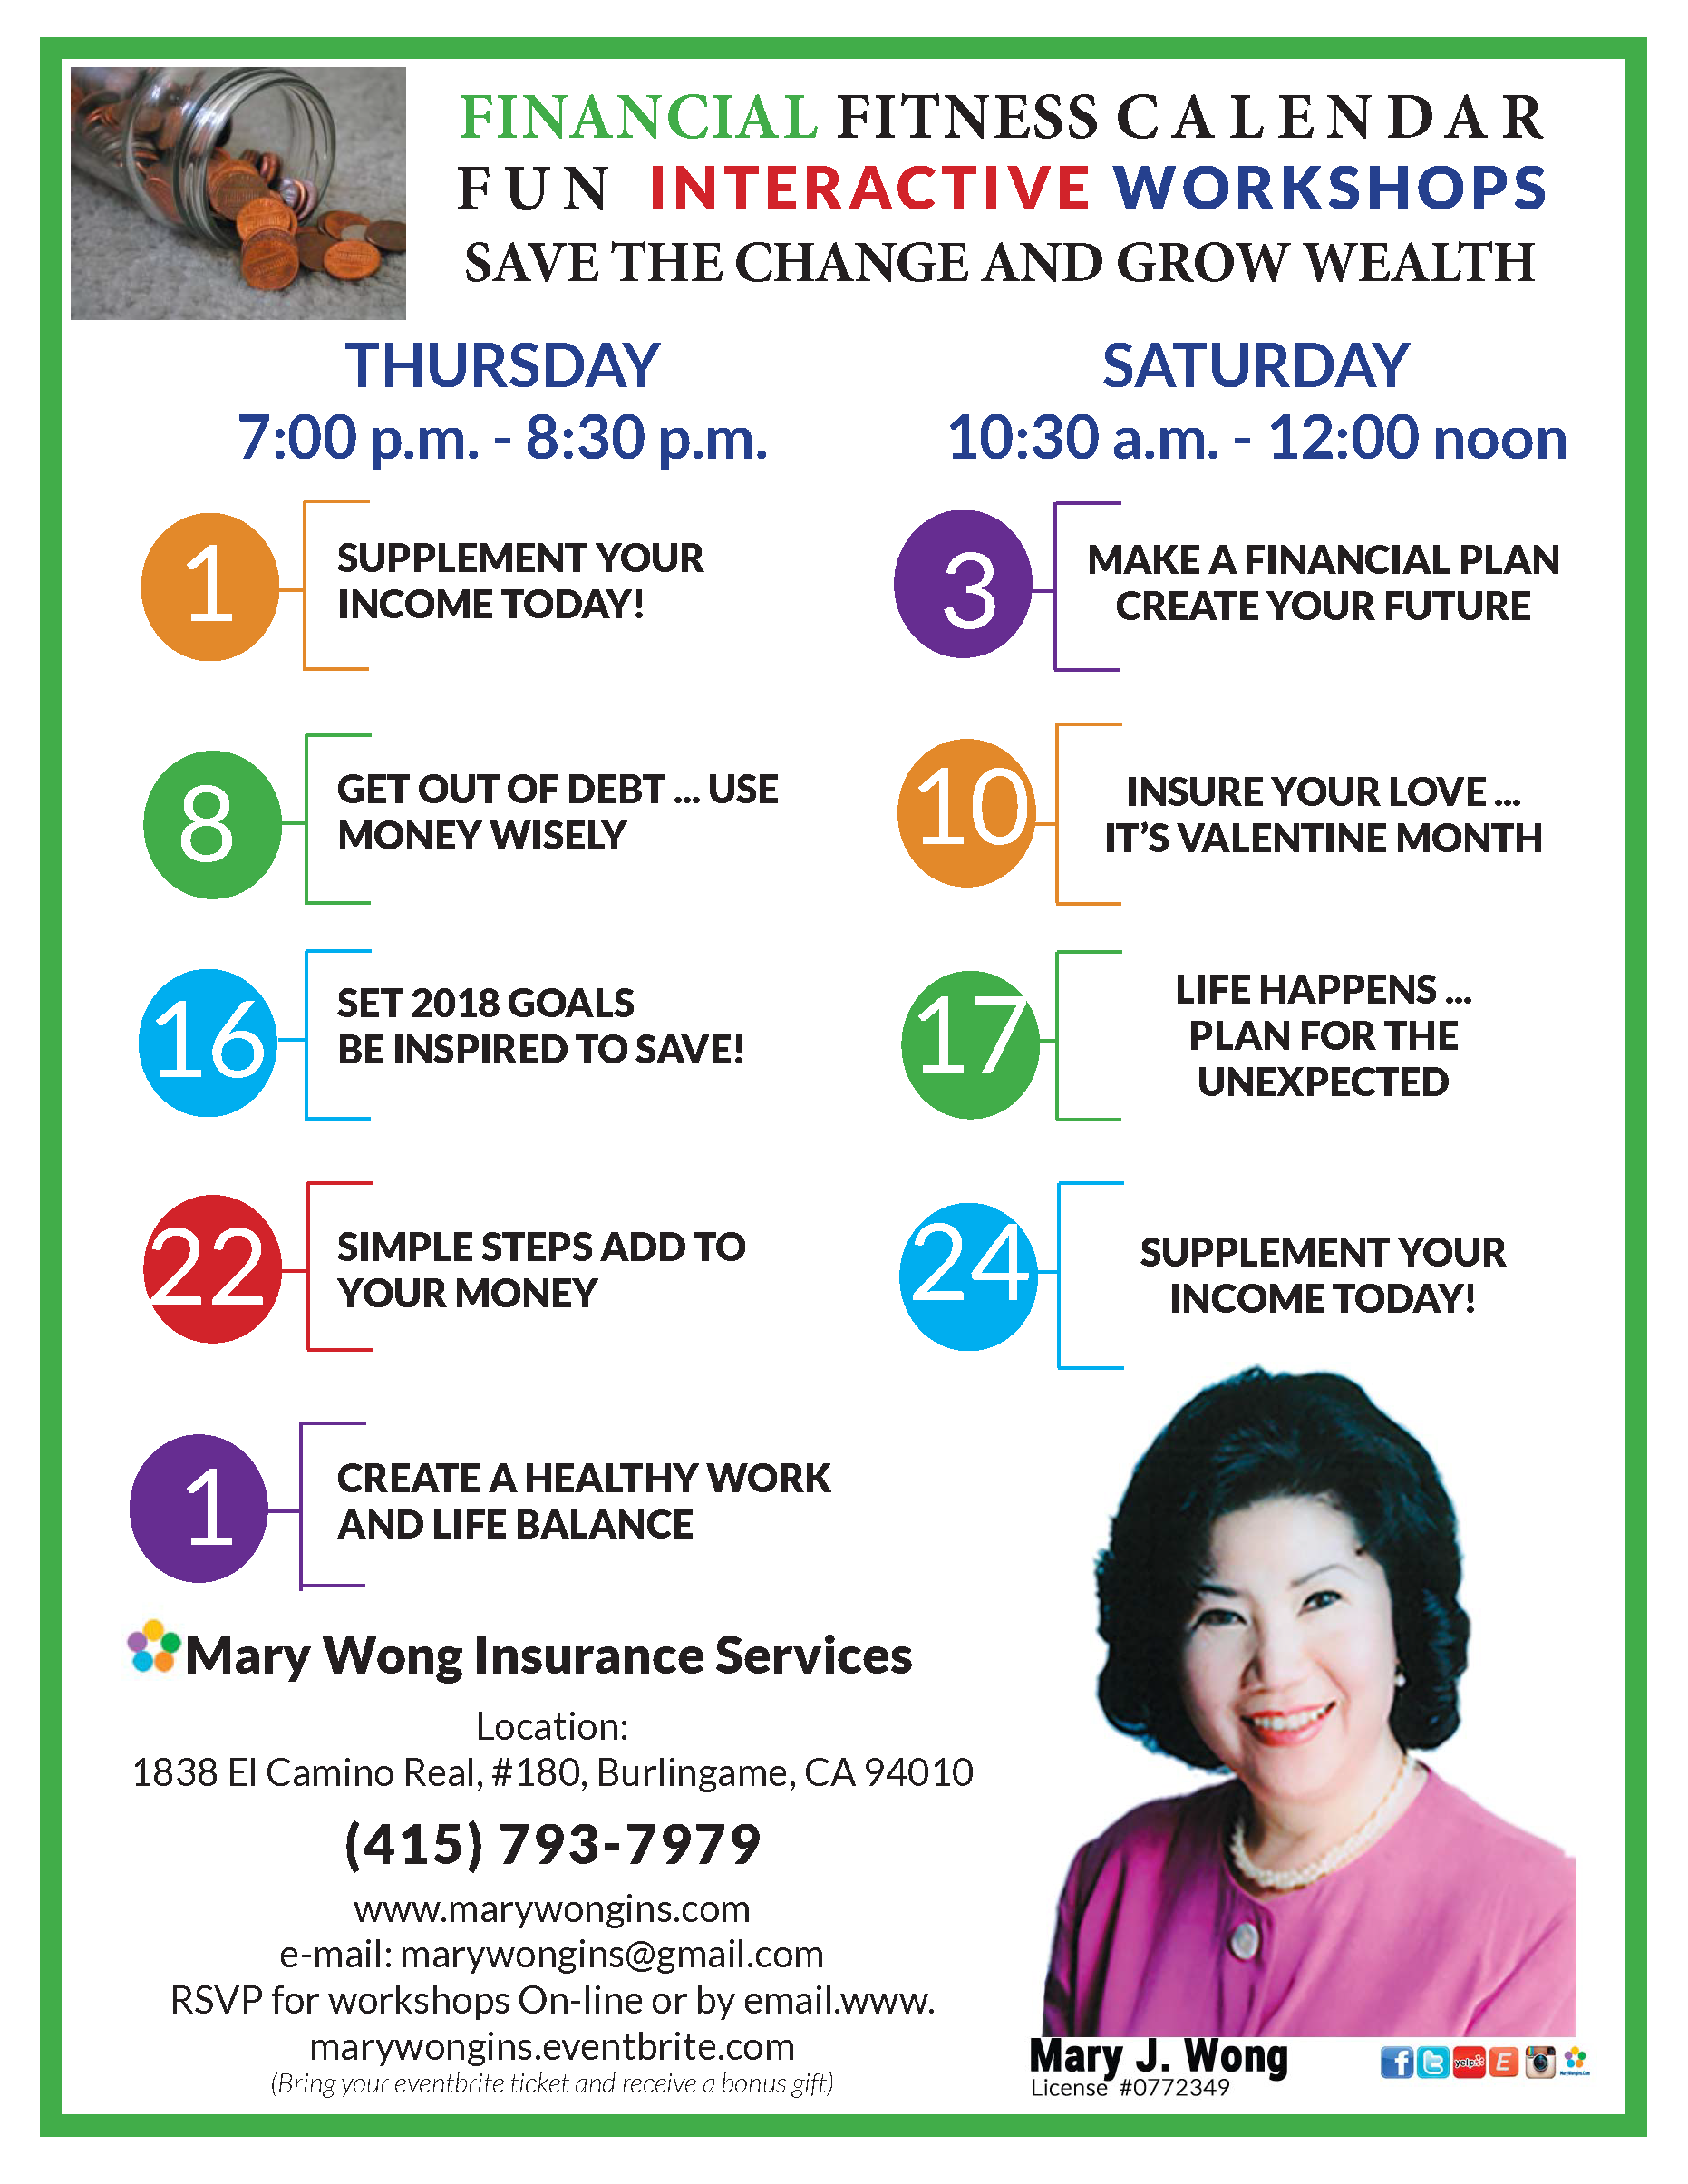 Let S Be Fit And Attend A Mary Wong Insurance Interactive Fun Financial Fitness Workshop Topics Discussed Include Can Financial Fitness Financial Interactive